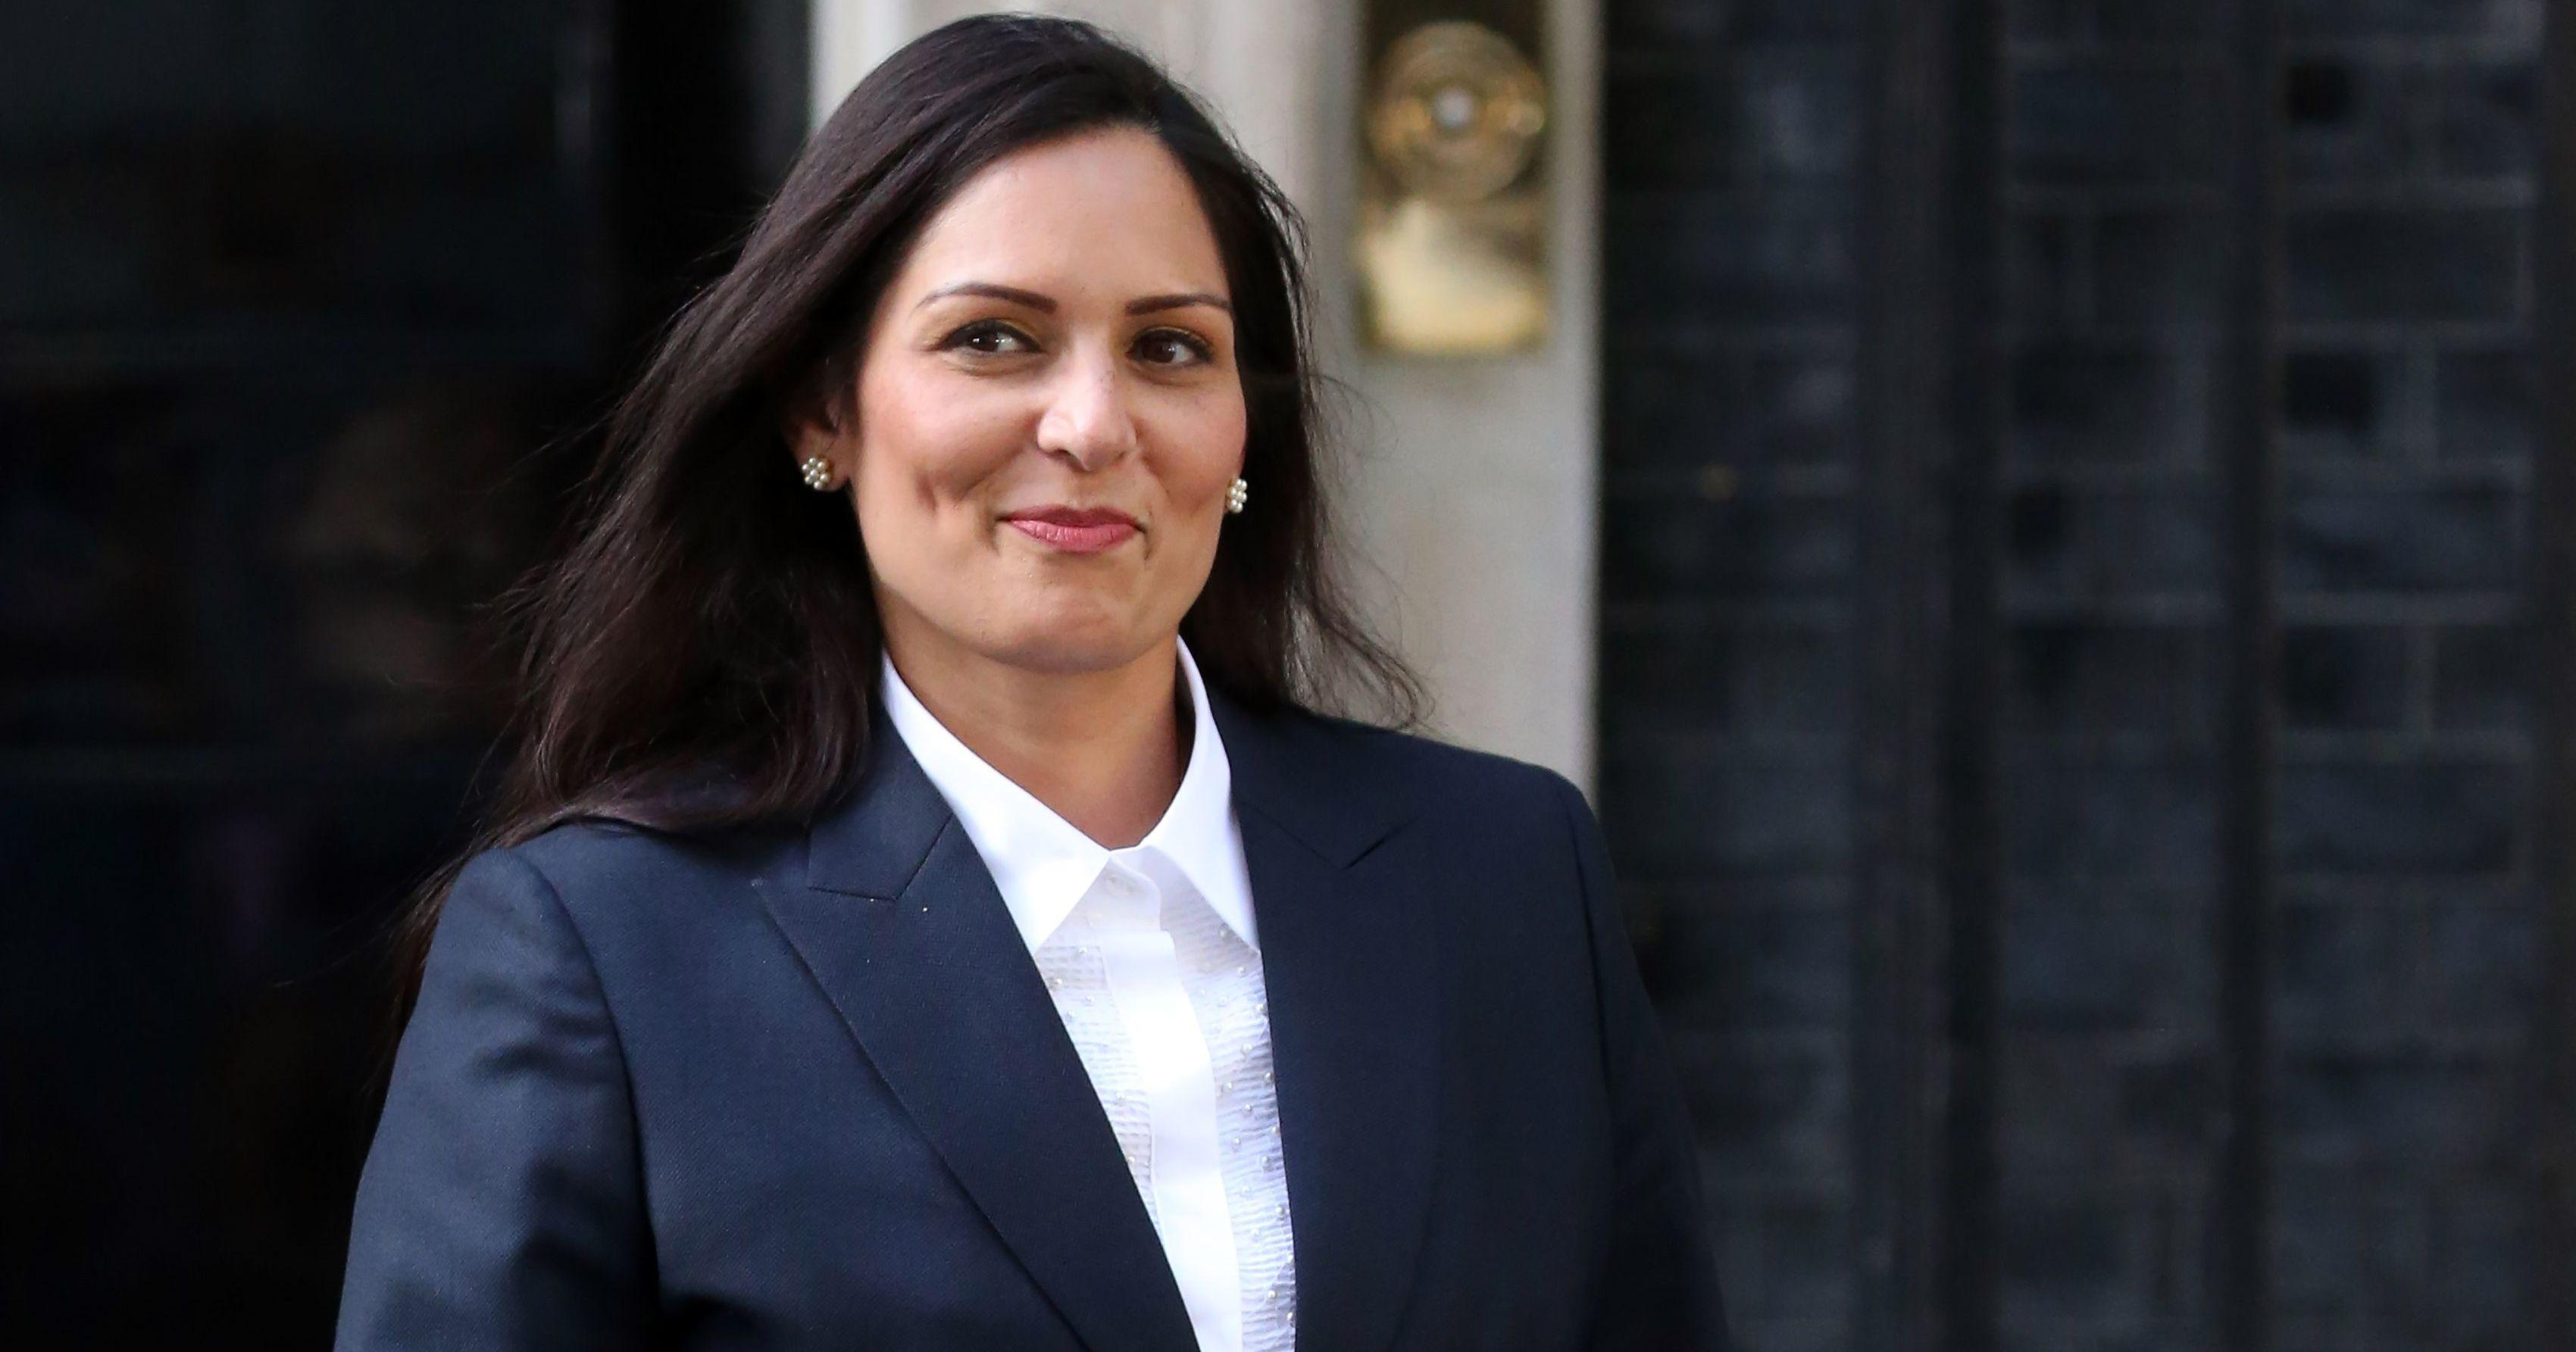 Priti Patel, A Staunch Modi Supporter, Appointed UK's ...